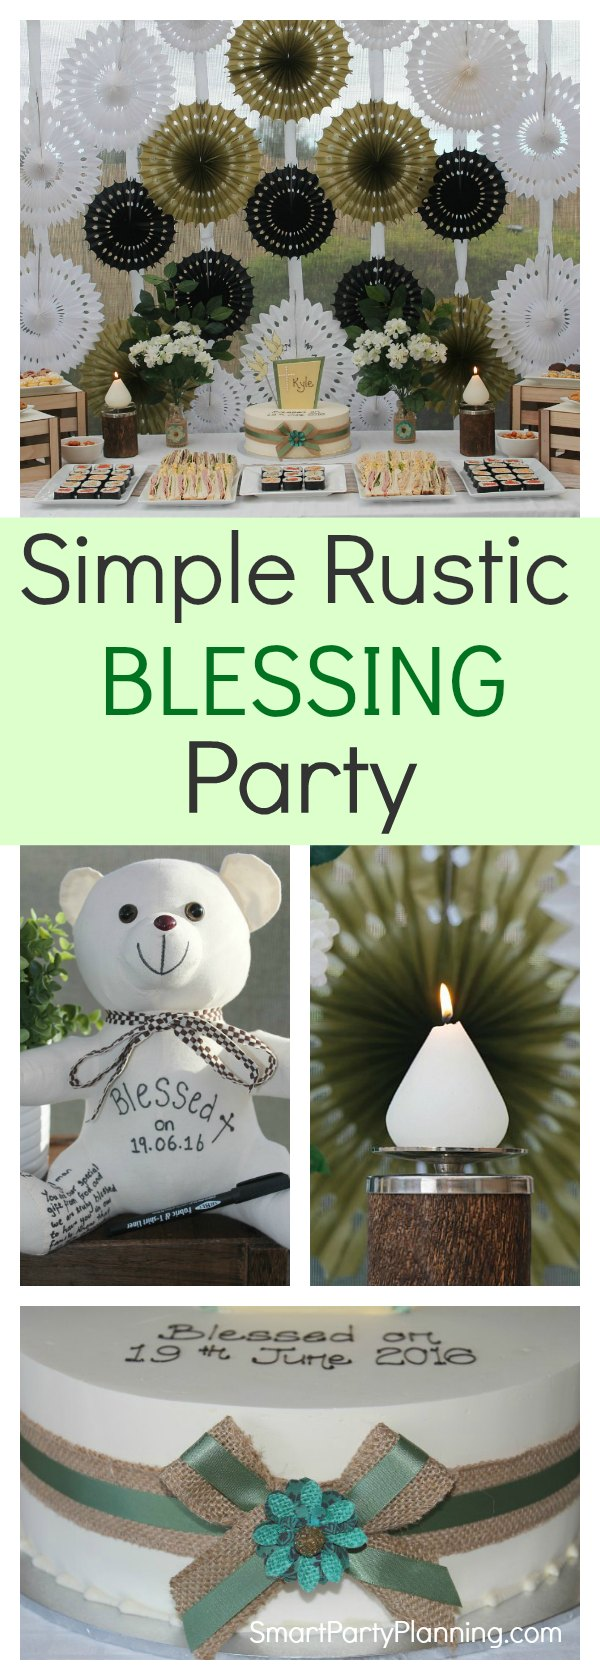 Enjoy a relaxed garden party with a rustic baby blessing or baptism celebration. Suitable for both boys and girls, this earthy theme has beautiful decoration with a calm and relaxed vibe.  Complete the look with easy burlap decorations, candles and simple flowers.